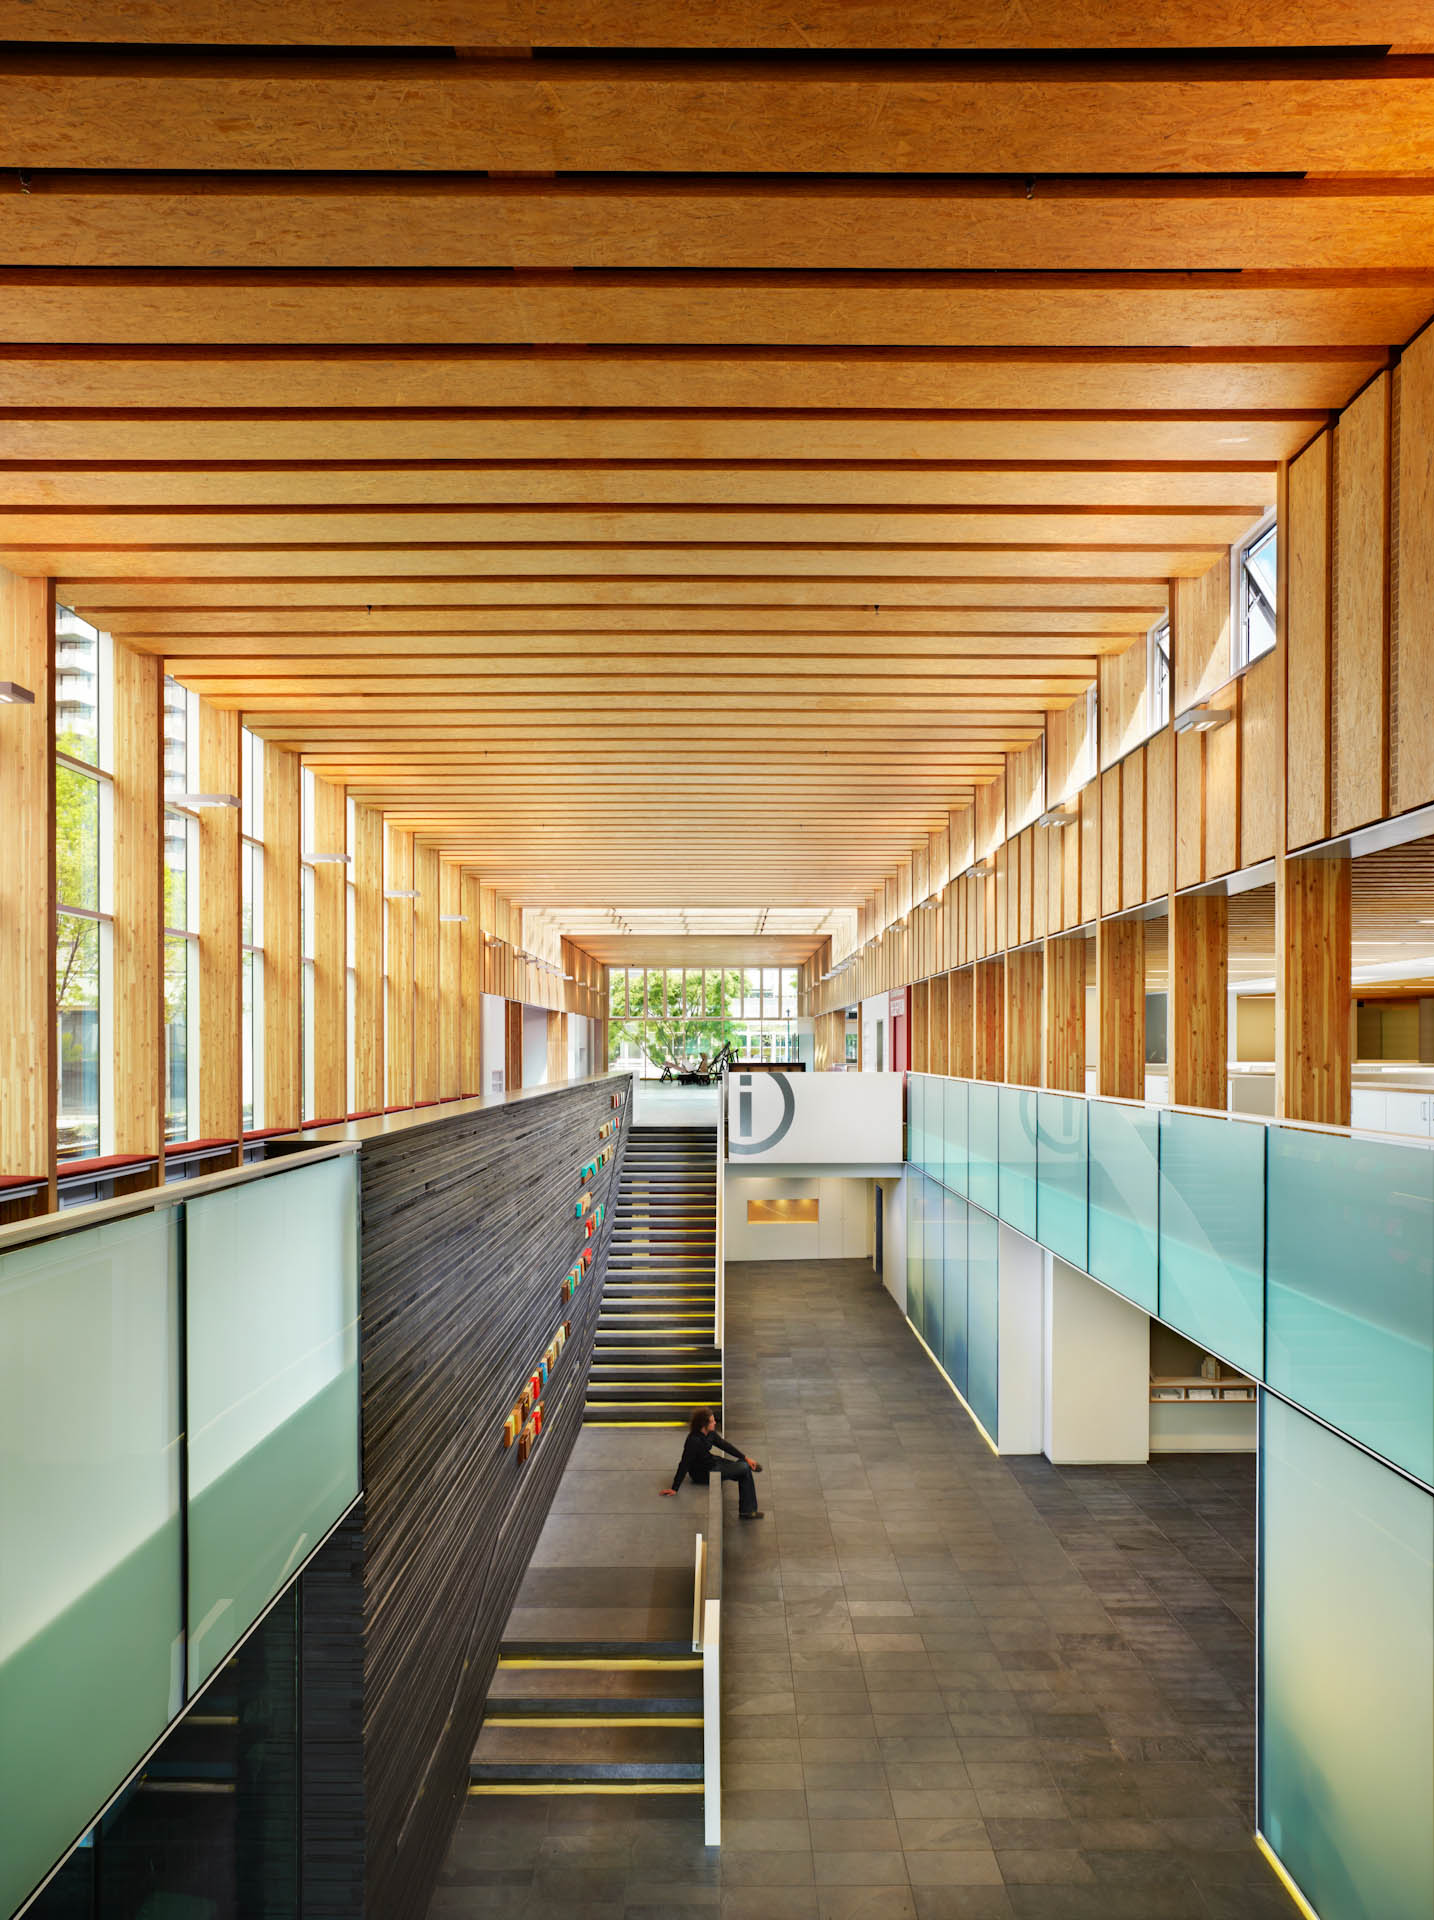 North vancouver city hall merit award 2012 michael for Hall woodwork designs